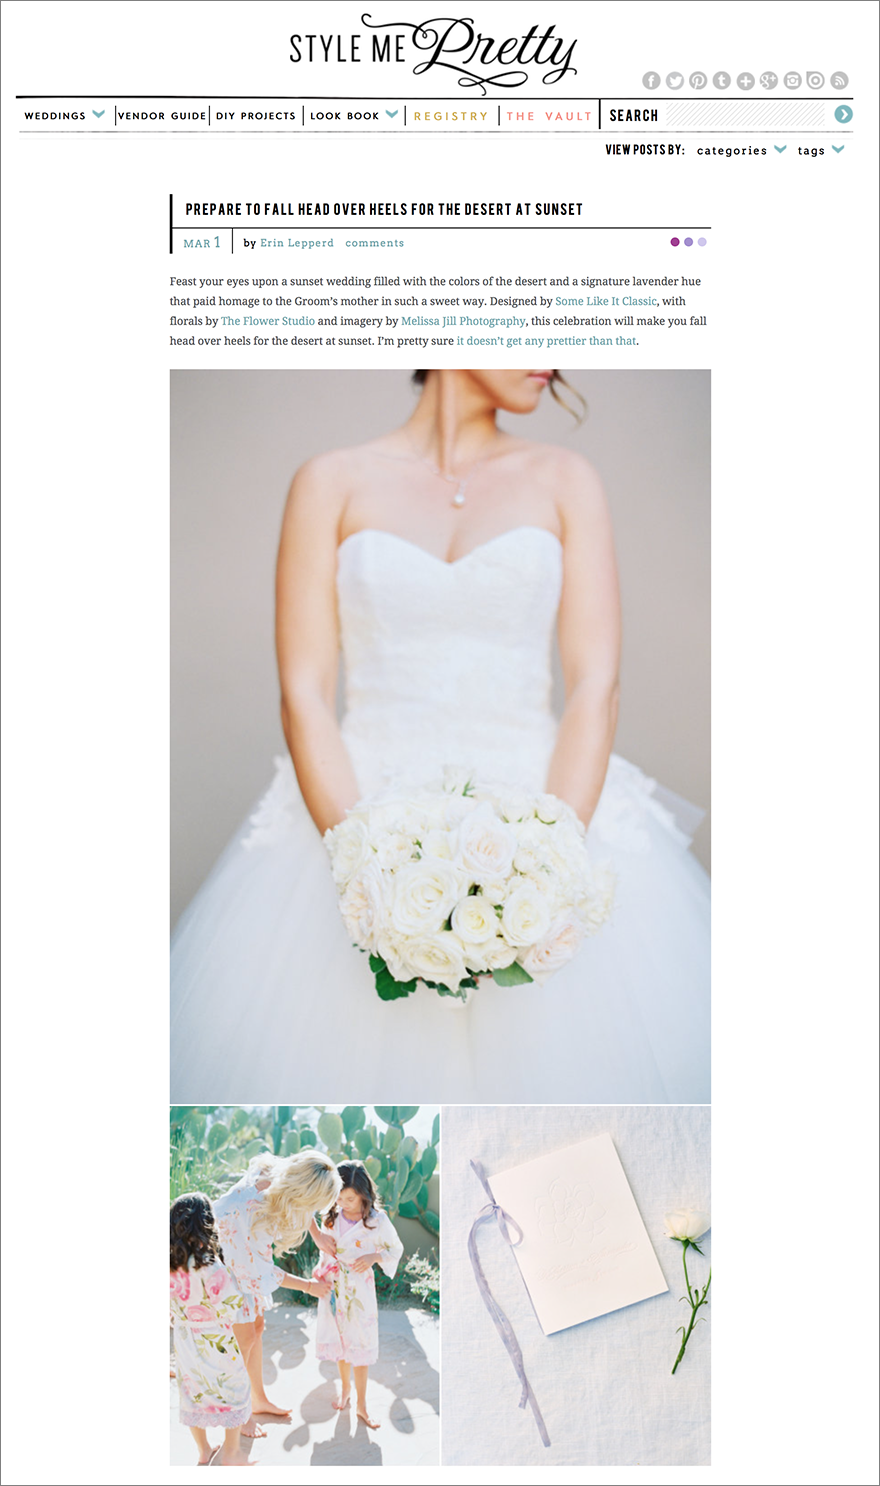 Melissa Jill Wedding featured on Style Me Pretty